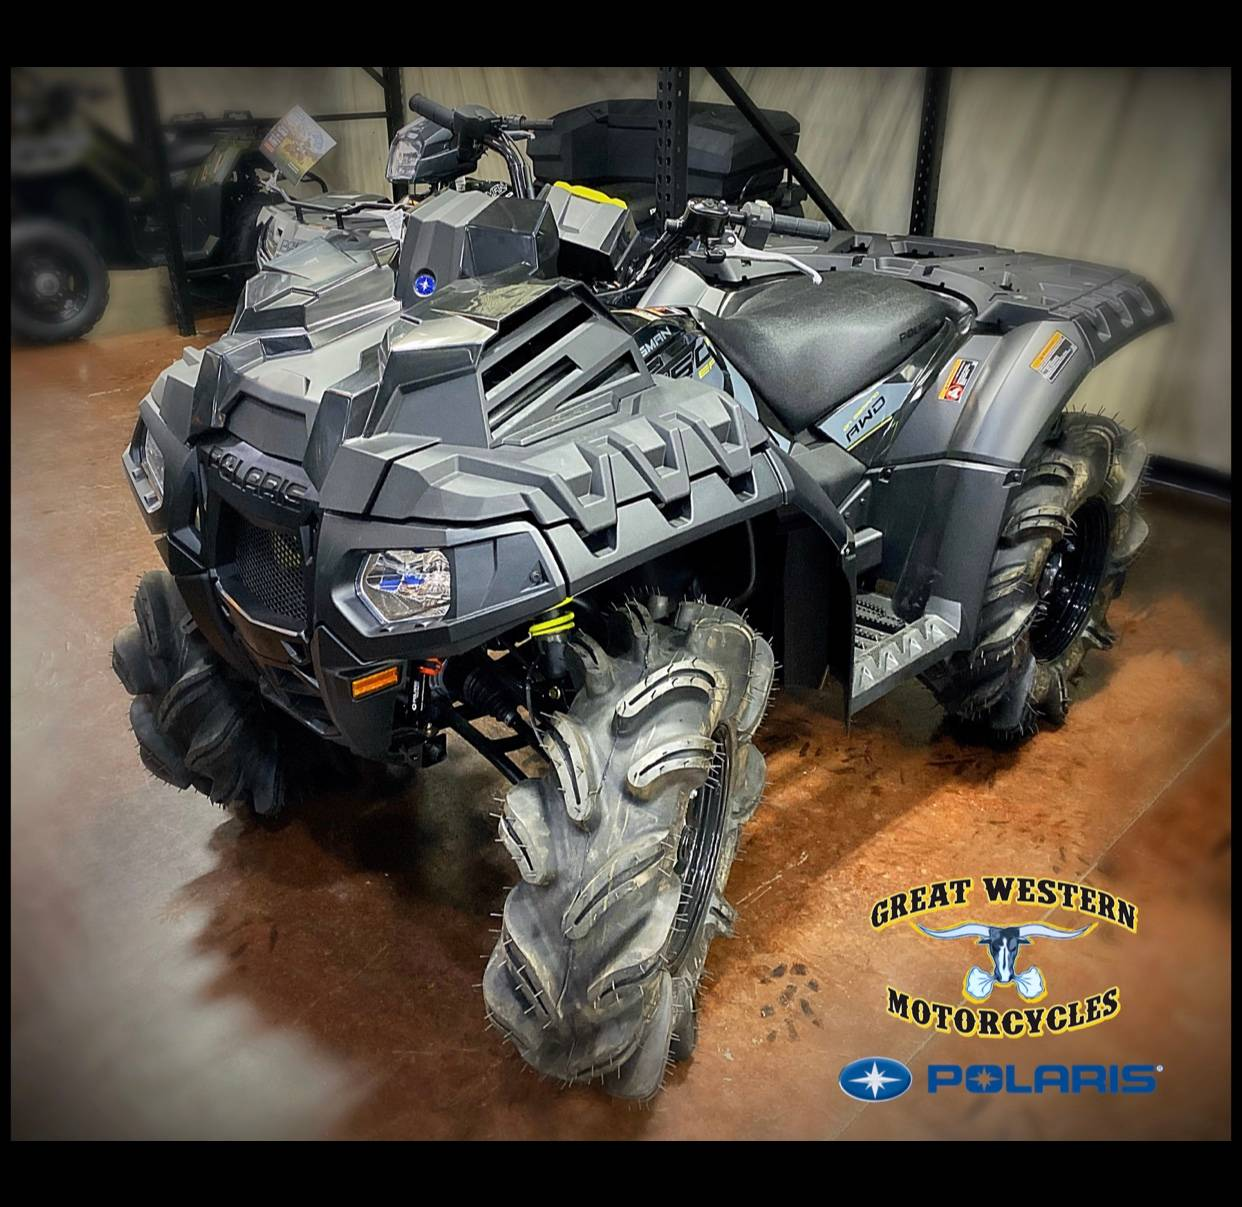 2020 Polaris Sportsman 850 High Lifter Edition in Statesville, North Carolina - Photo 1